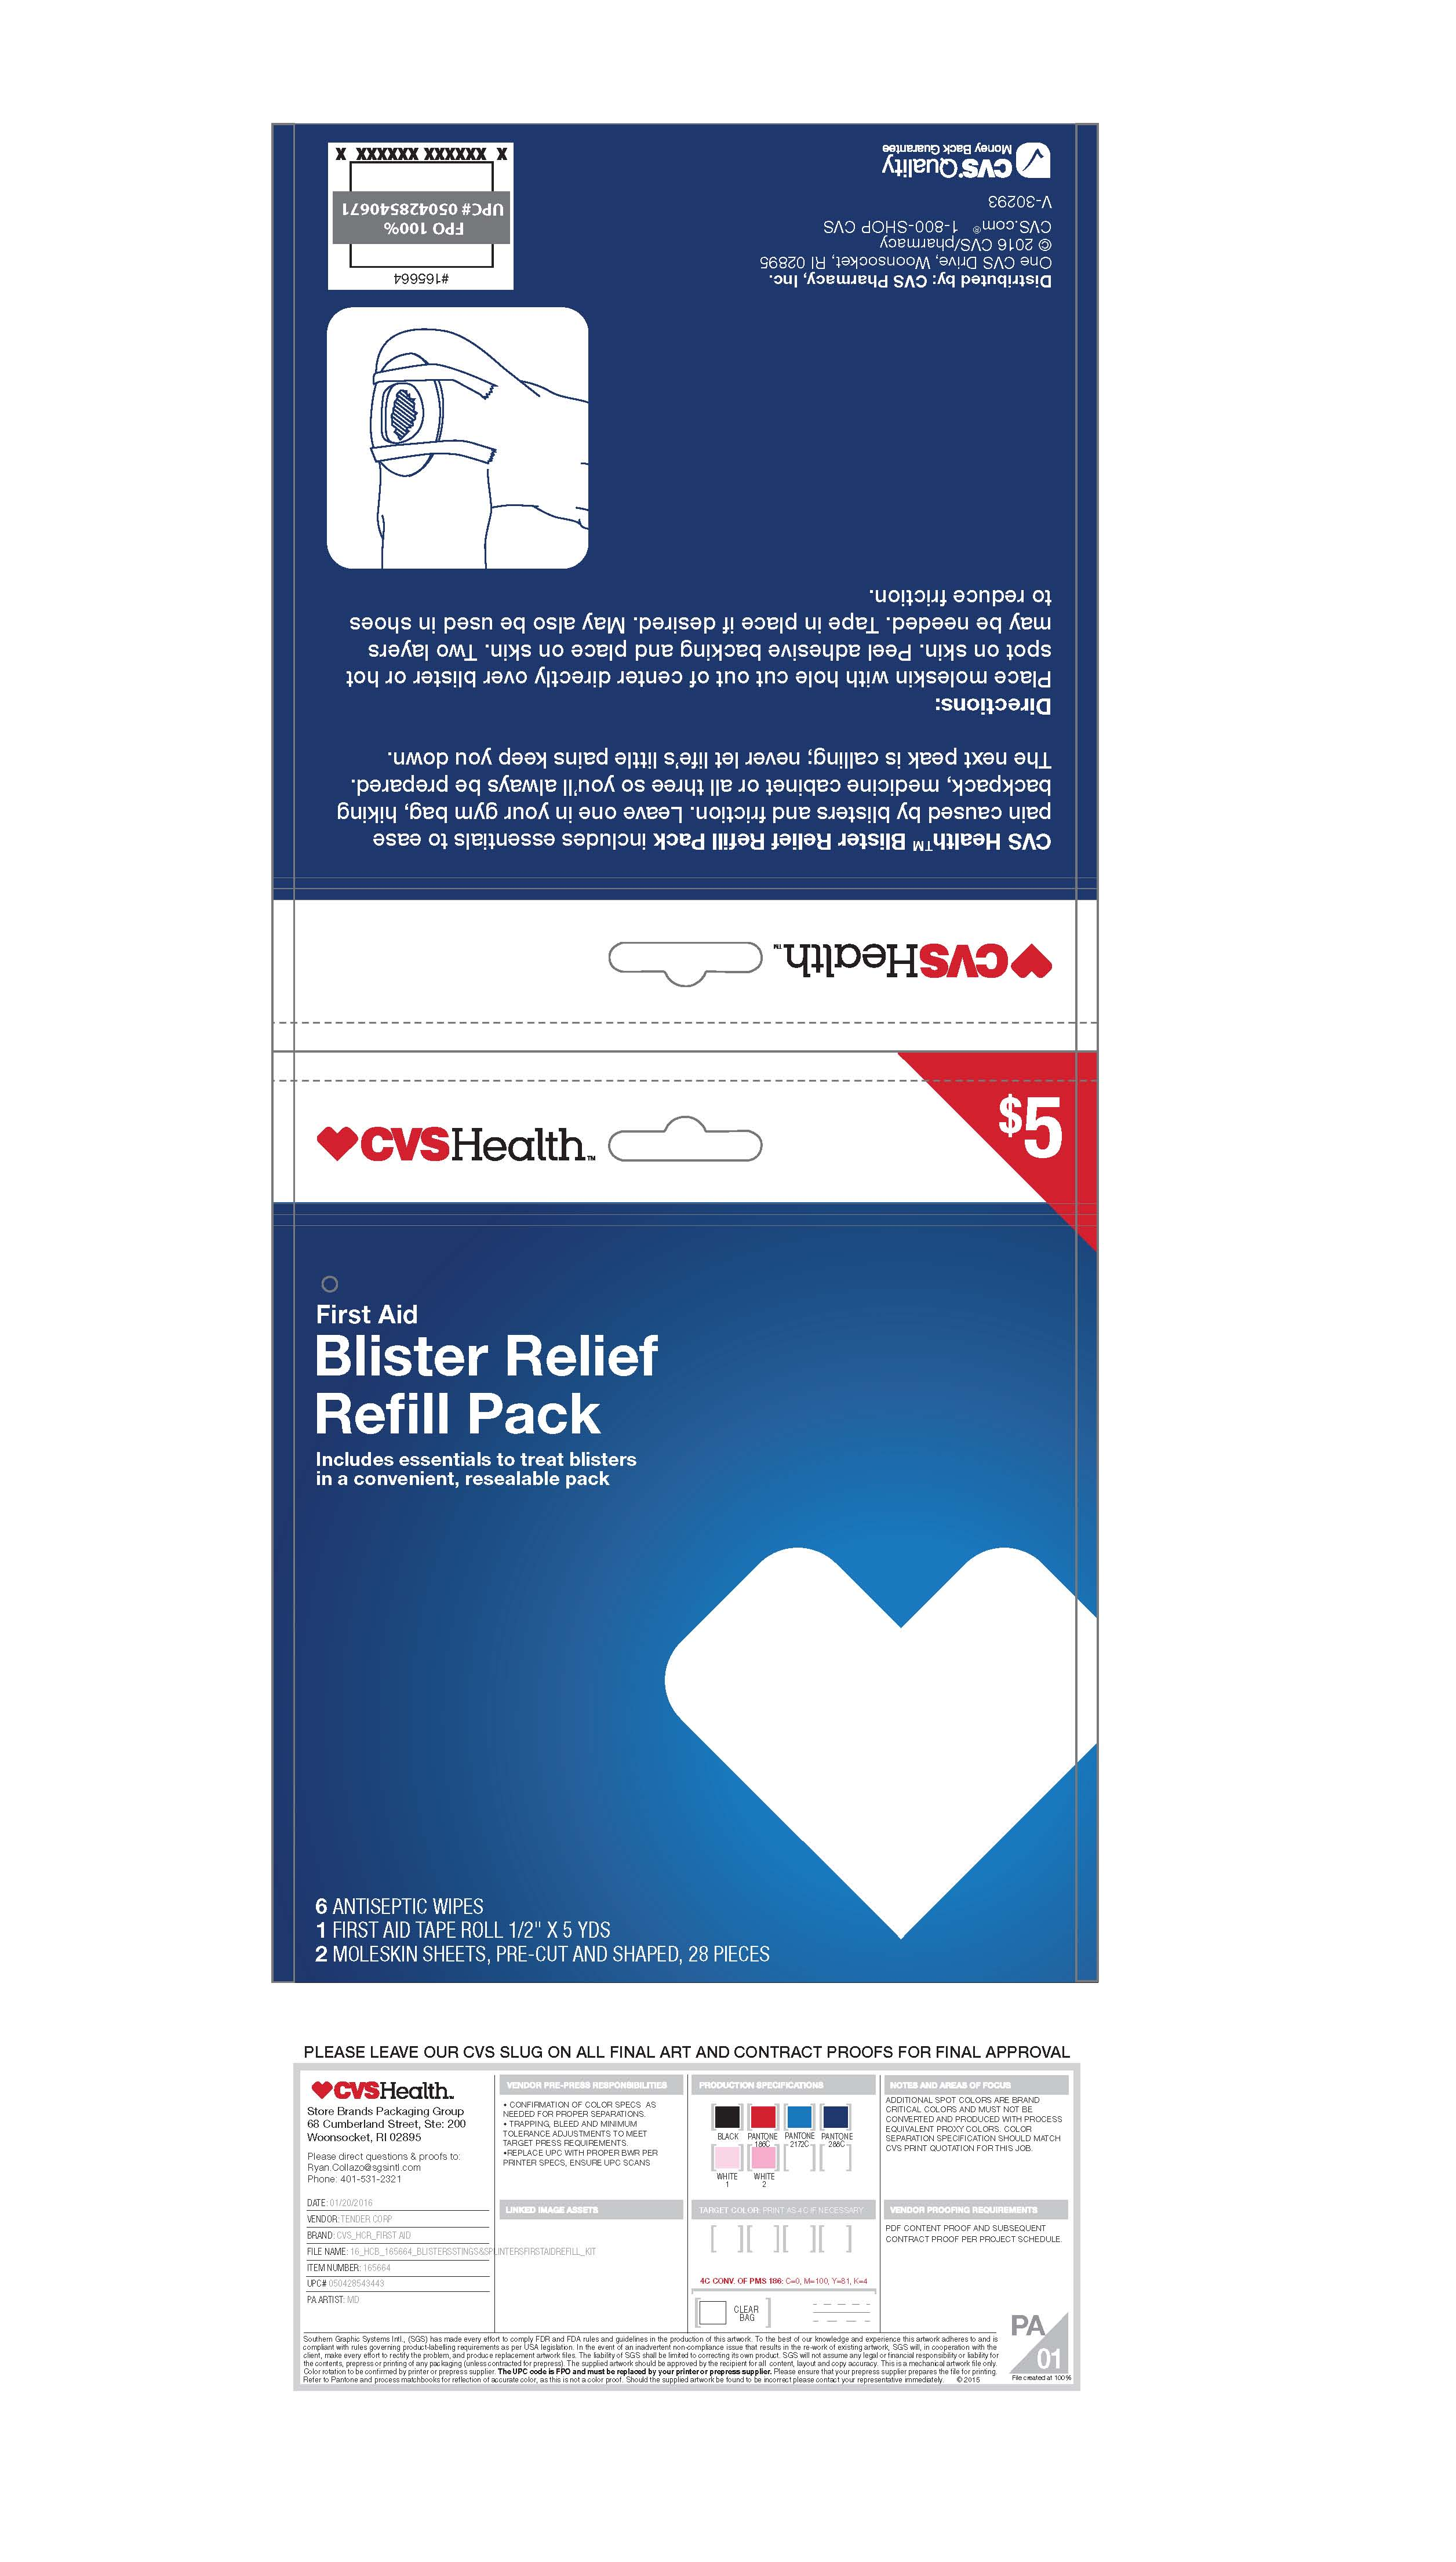 Cvs Blister Relief Refill Pack | Benzalkonium Chloride Kit while Breastfeeding